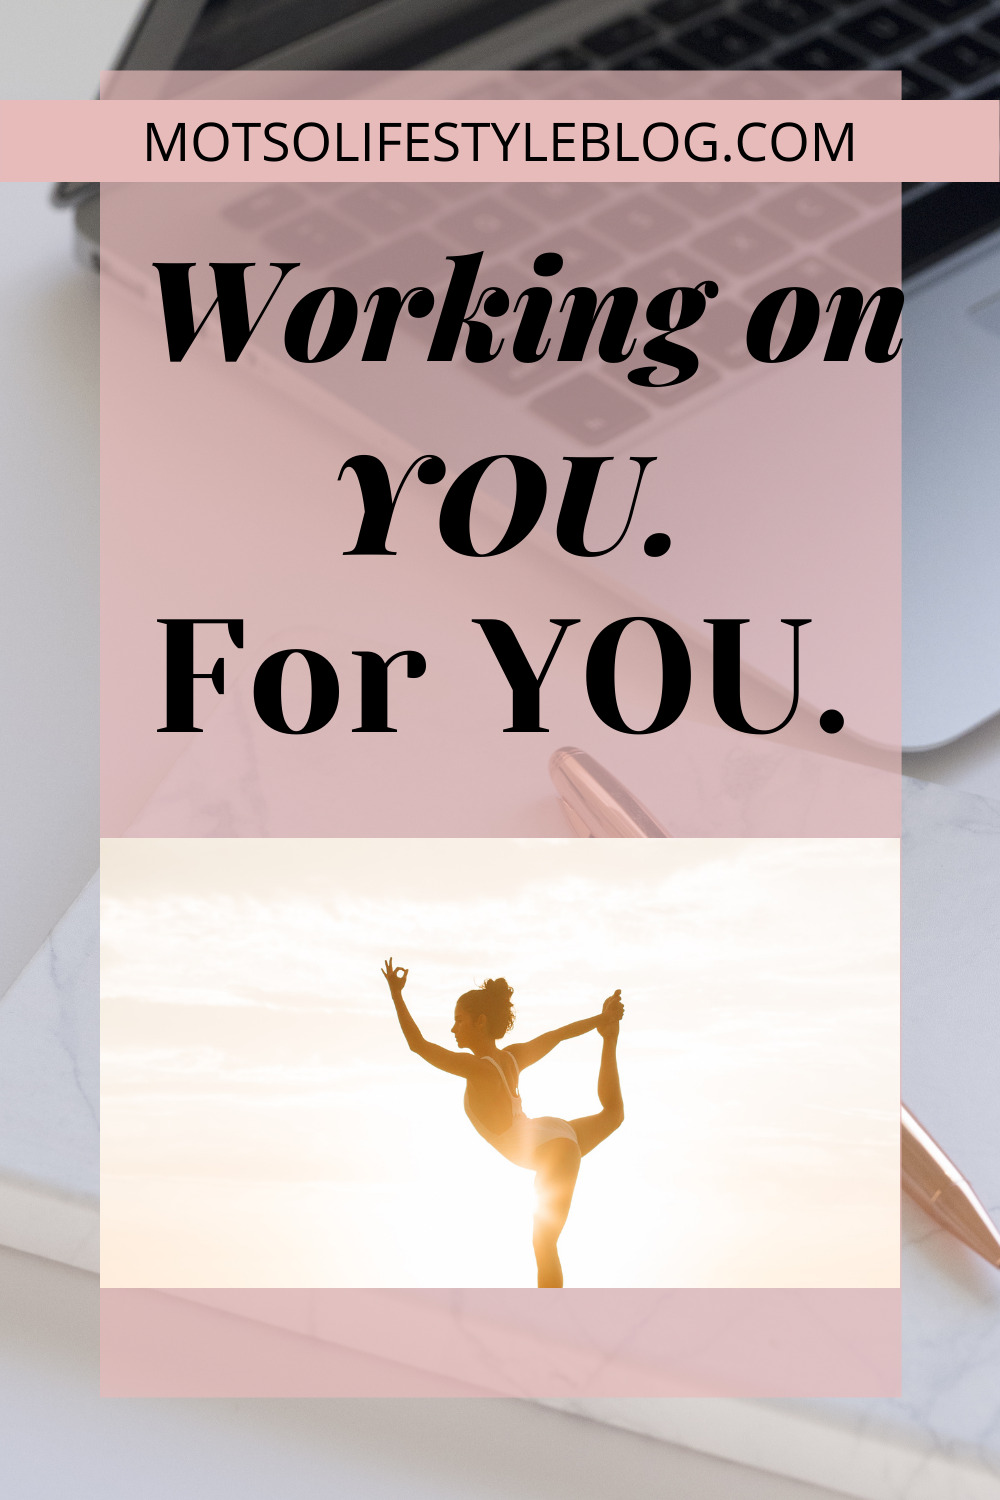 Working on you, for you.